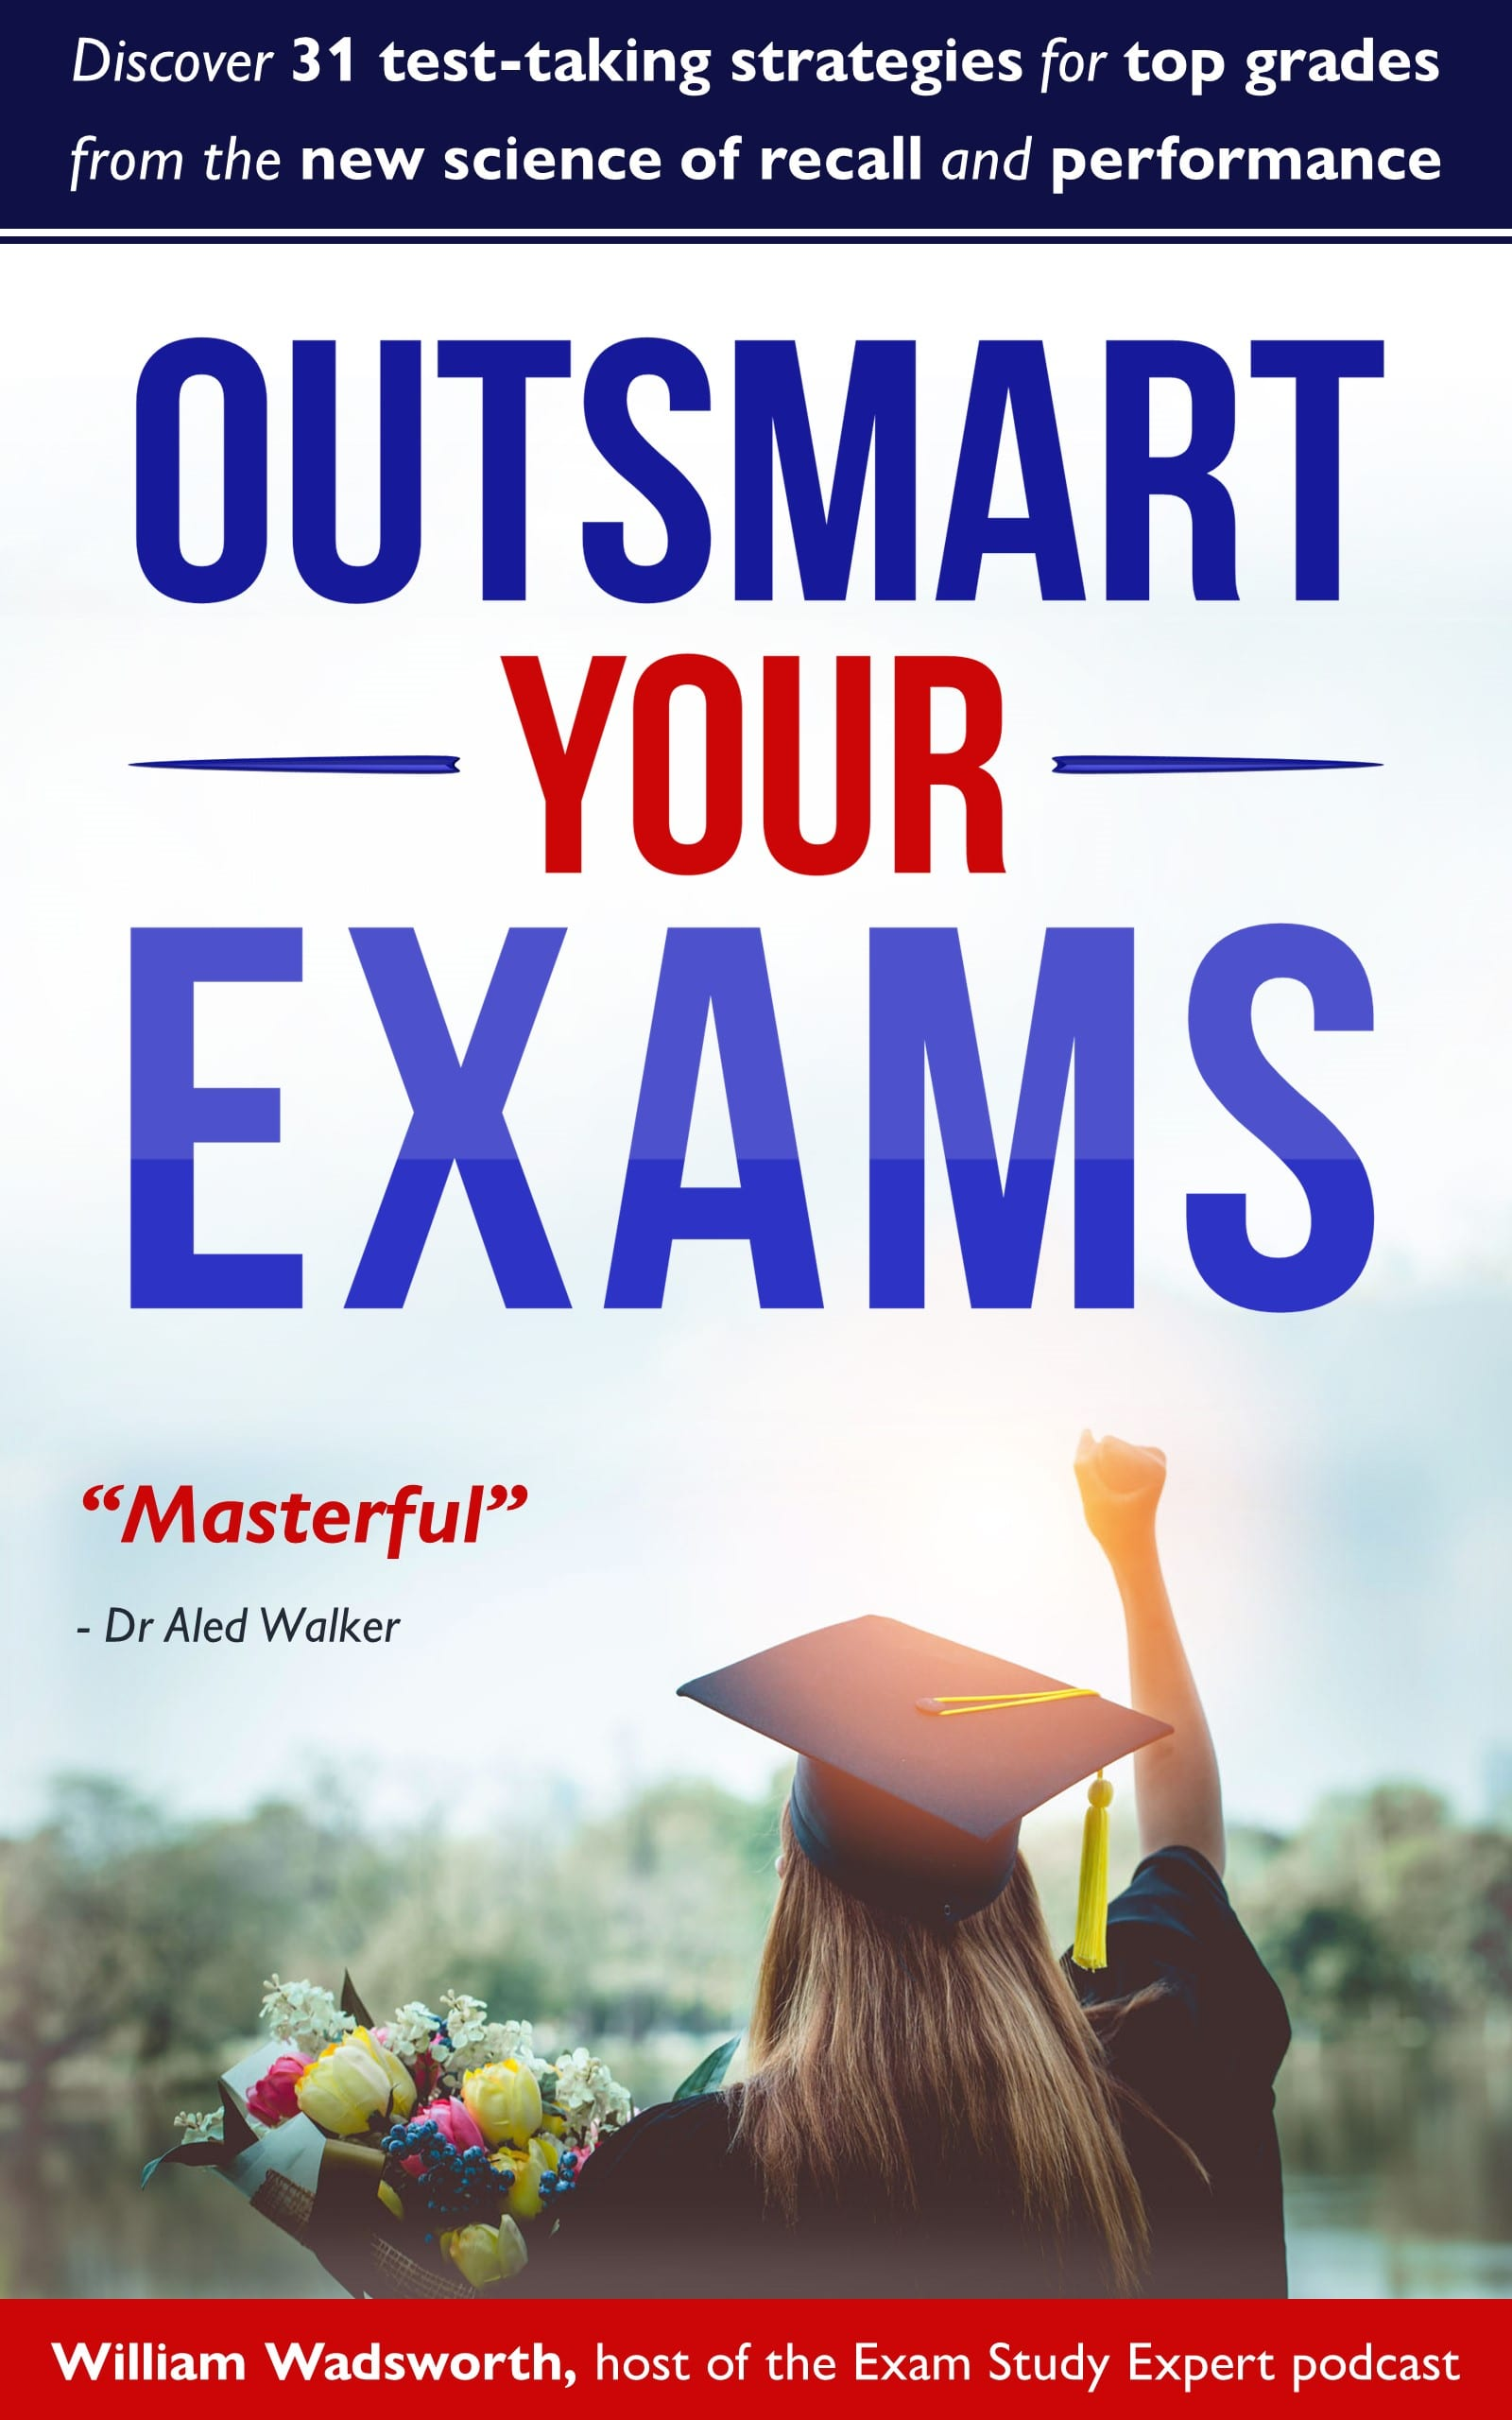 Outsmart Your Exams: 31 test-taking strategies for top grades -